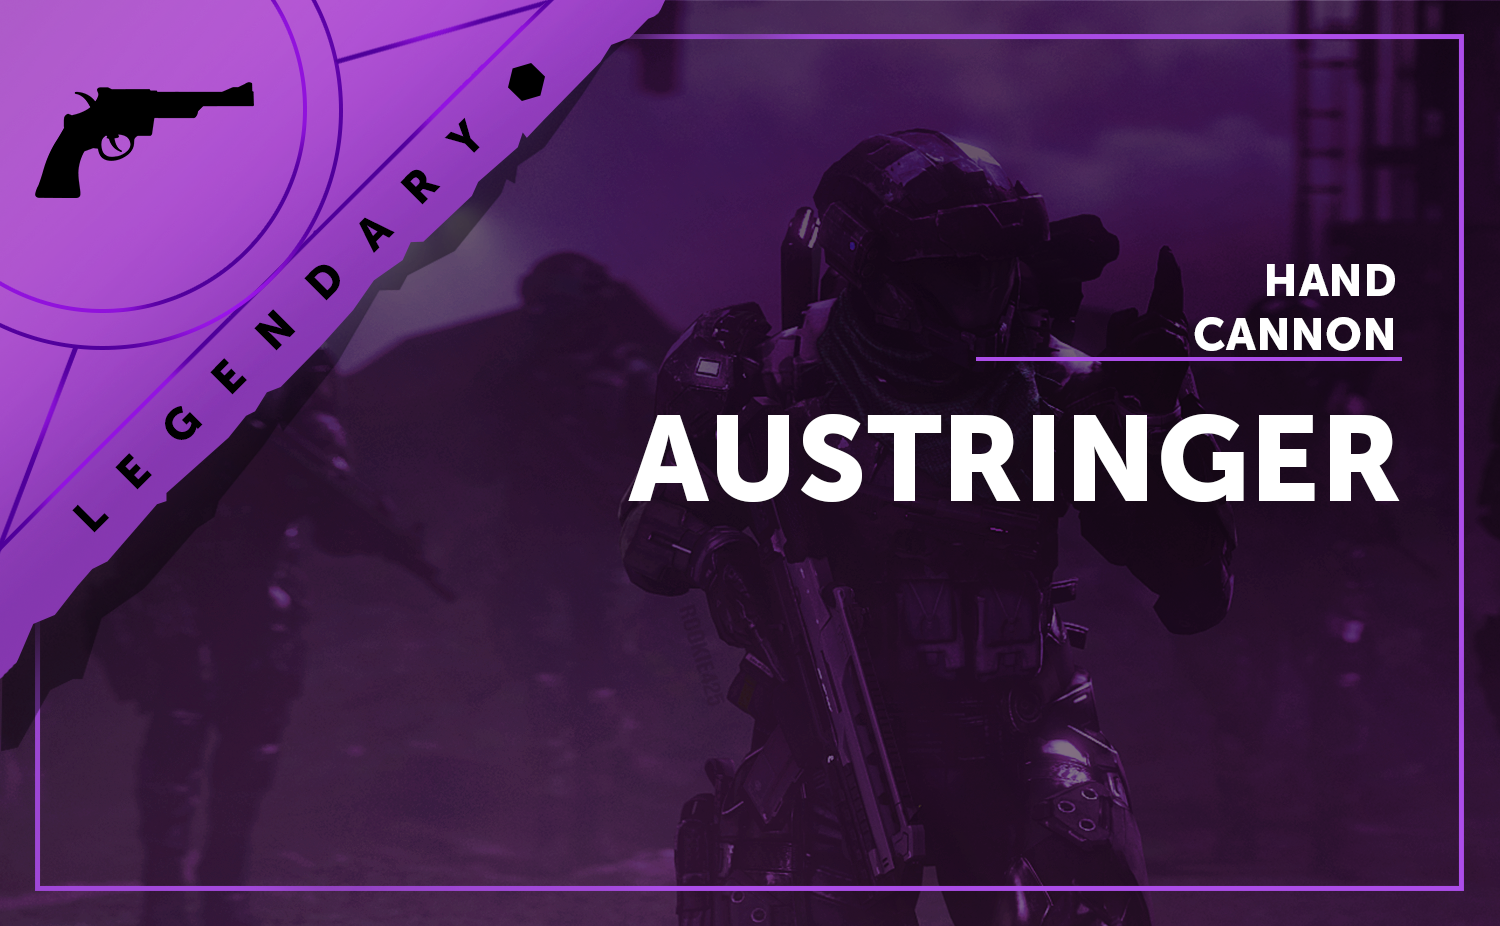 Buy Austringer Cannon Destiny 2 Boost Последние твиты от austringer (@ftaustringer). blazing boost